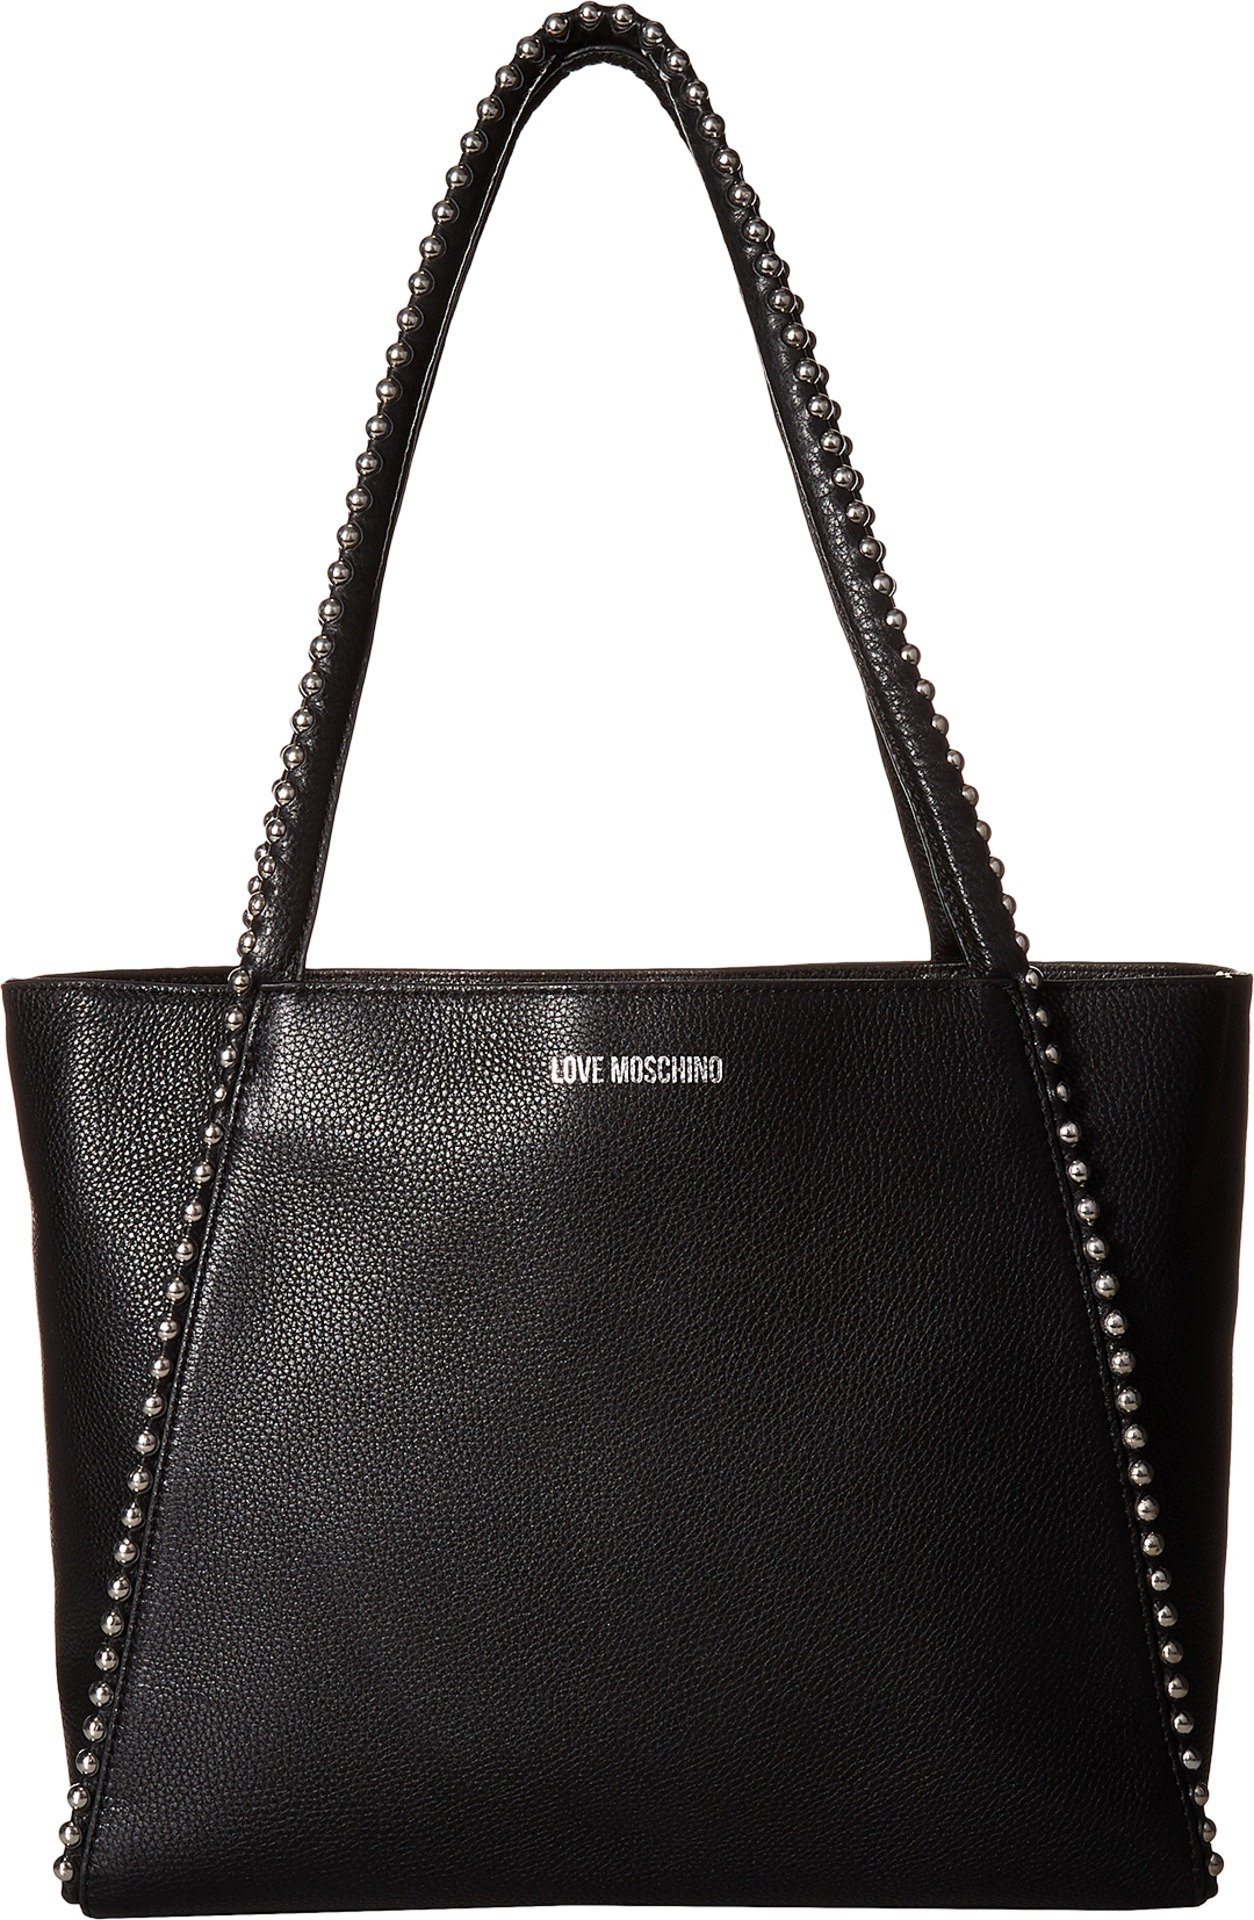 LOVE Moschino Women's Pallina Tote Black One Size